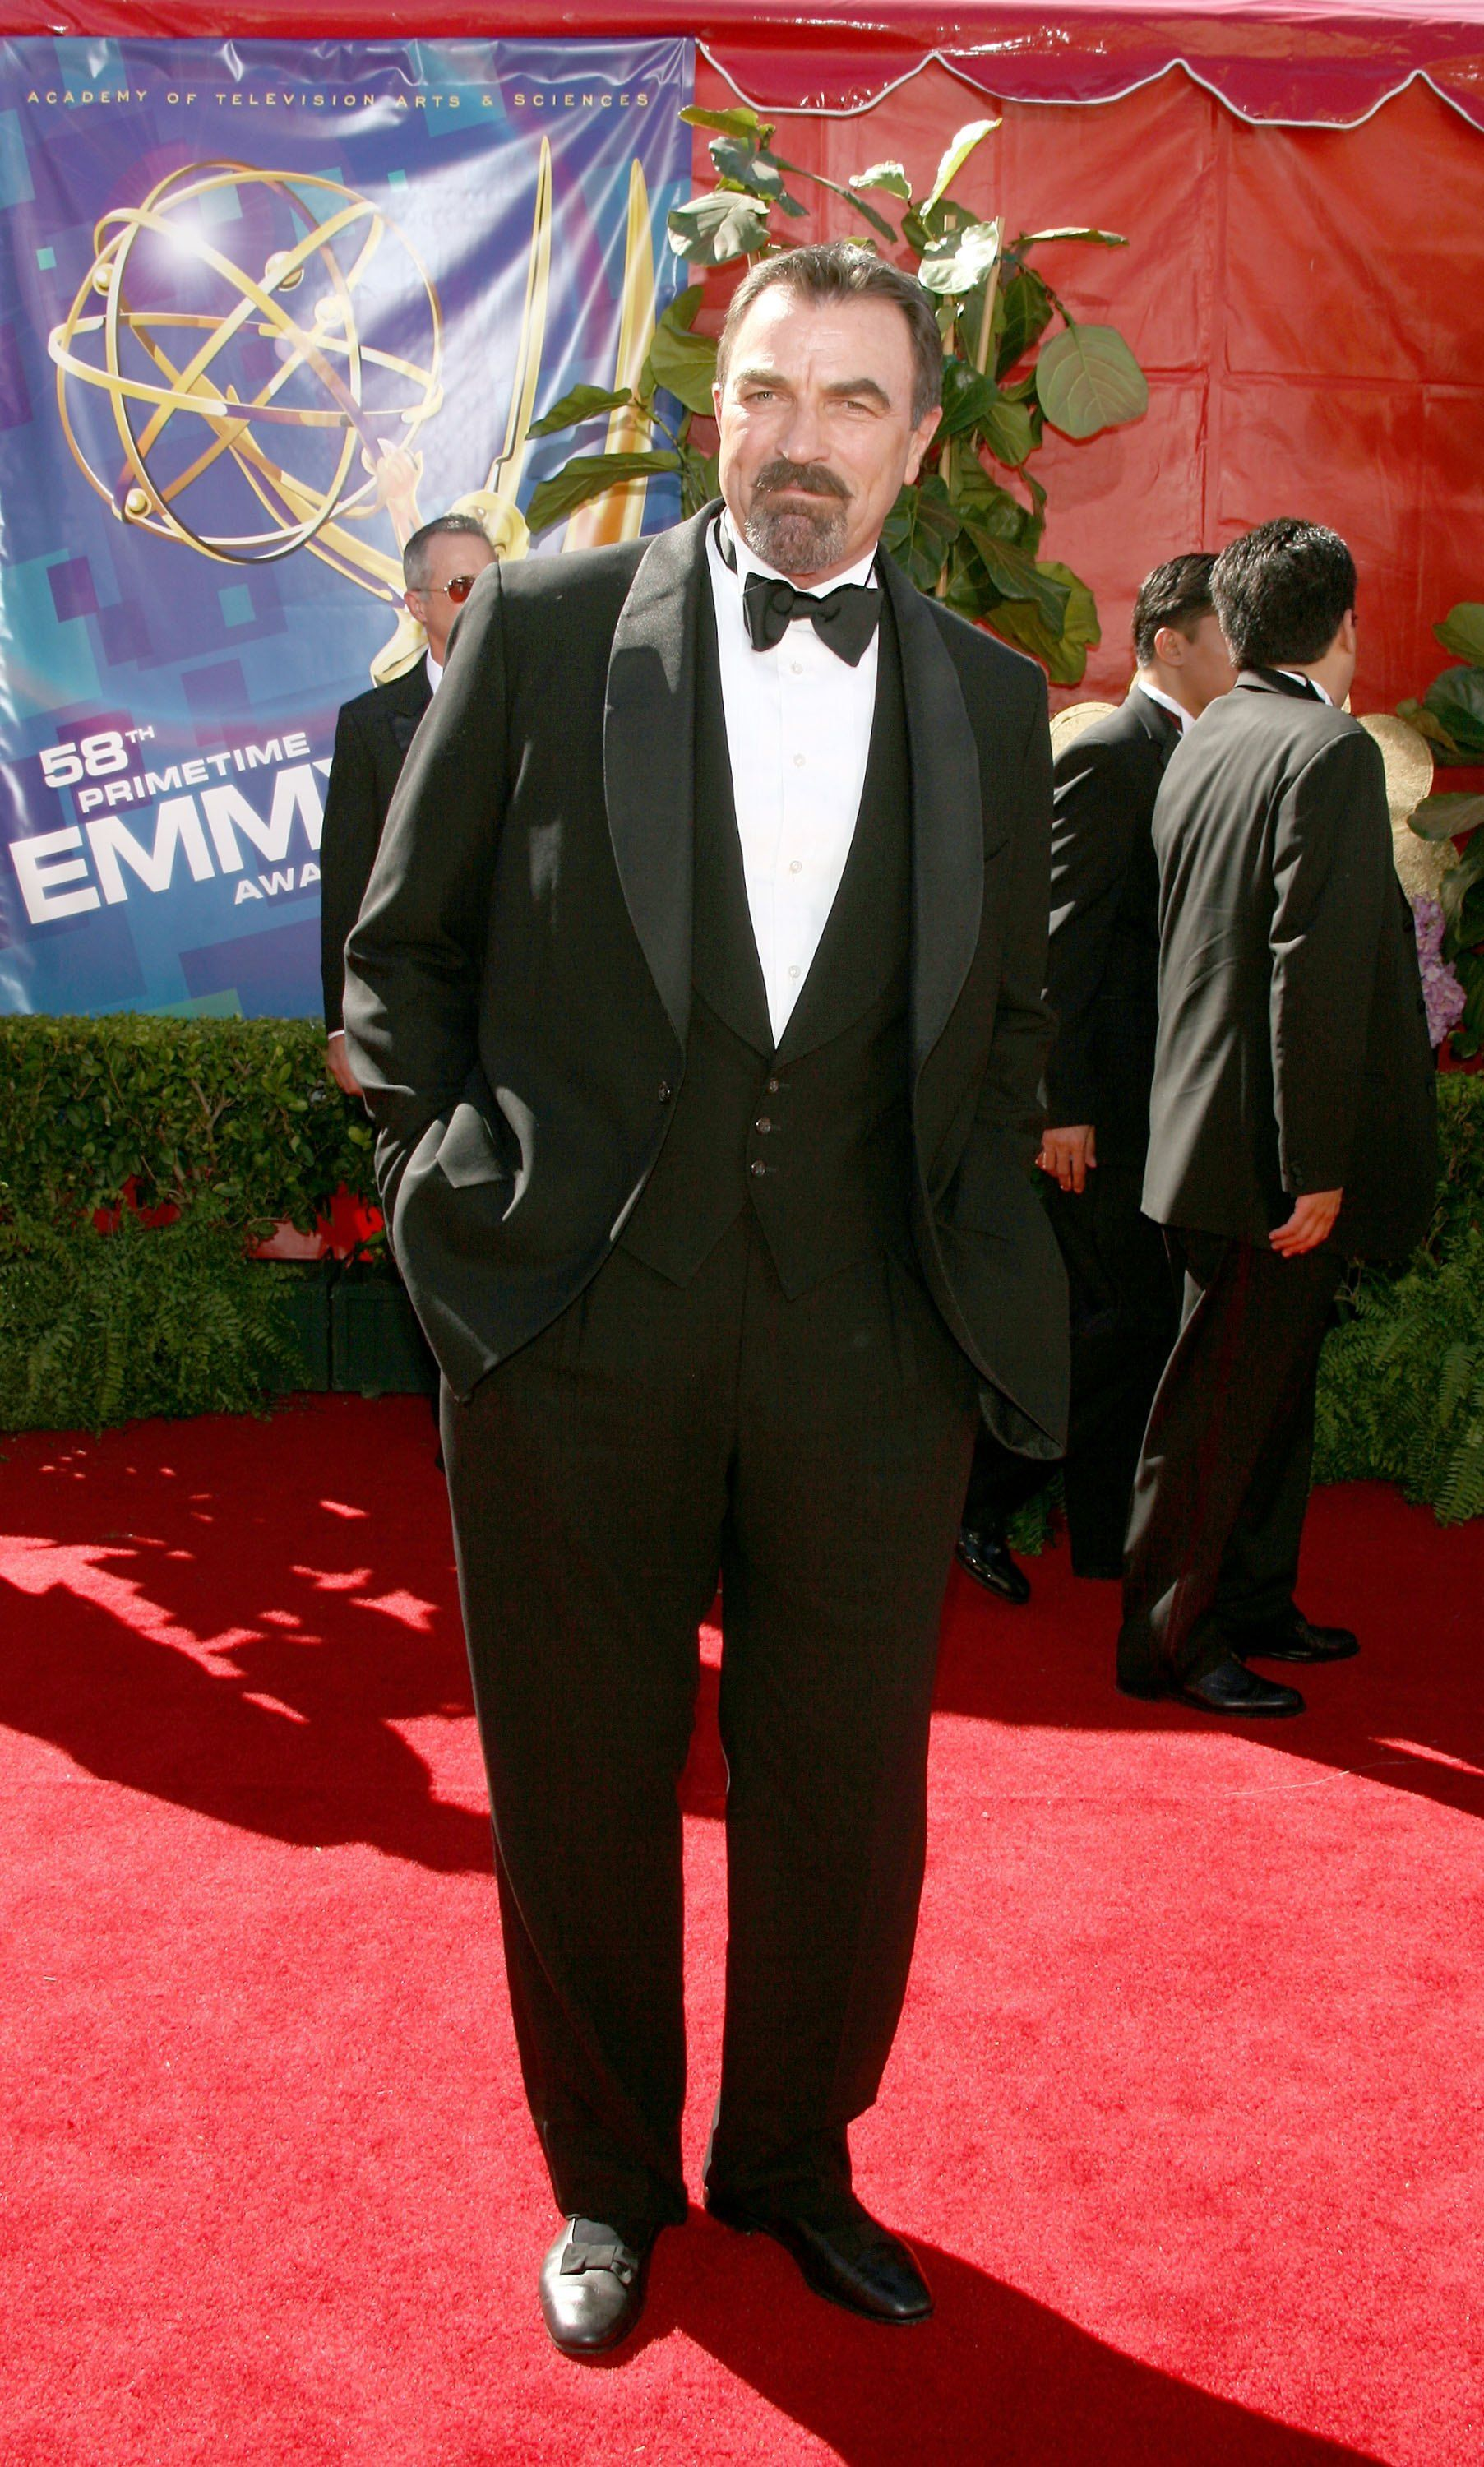 Tom Selleck during the 58th Annual Primetime Emmy Awards at the Shrine Auditorium on August 27, 2006 in Los Angeles, California. | Source: Getty Images